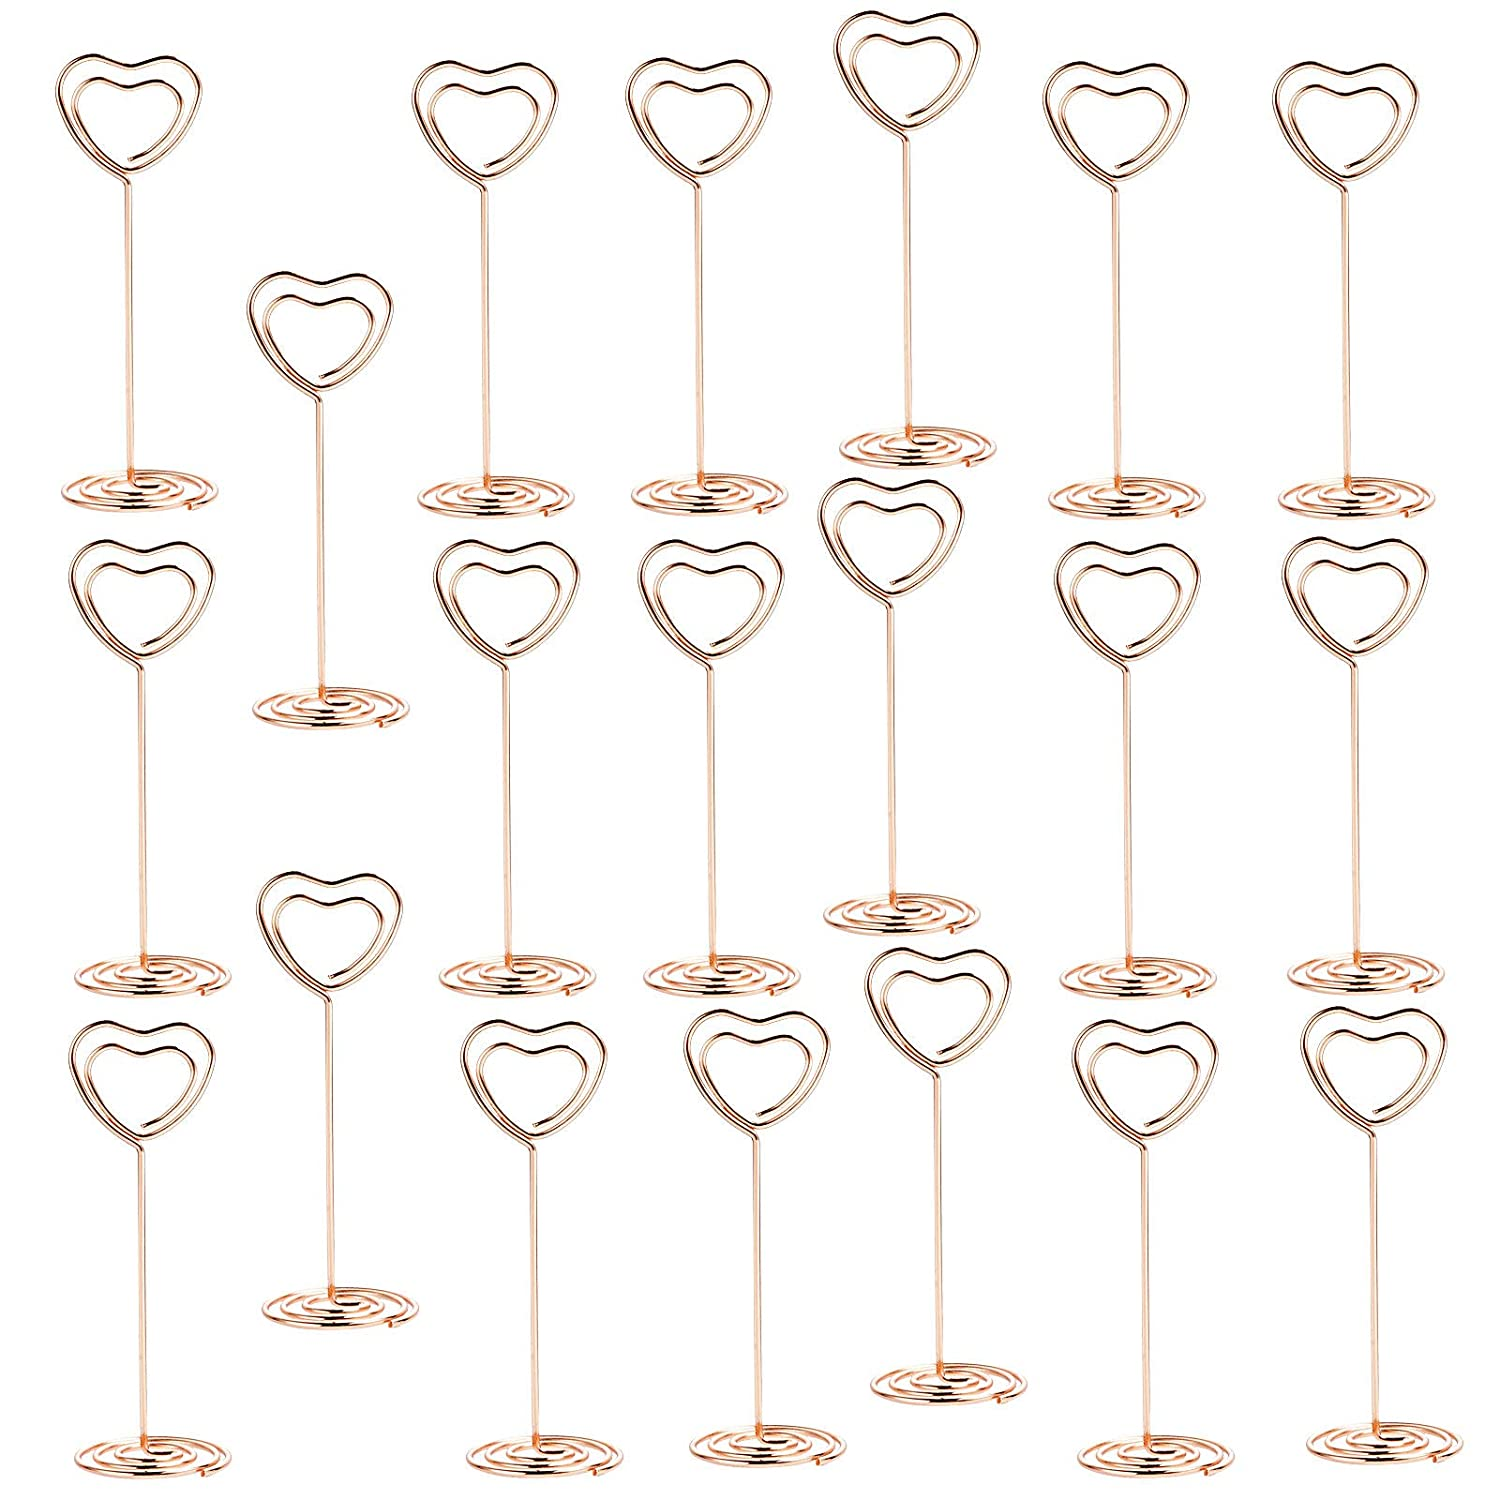 Kmall 6pcs Clear Transparent Butterfly Acrylic Crystal Tongs Tweezers Place Card with Metal Base Shape as Support Memo Photo Clip DIY Photo Holder for Place Card Holder Wedding Favor